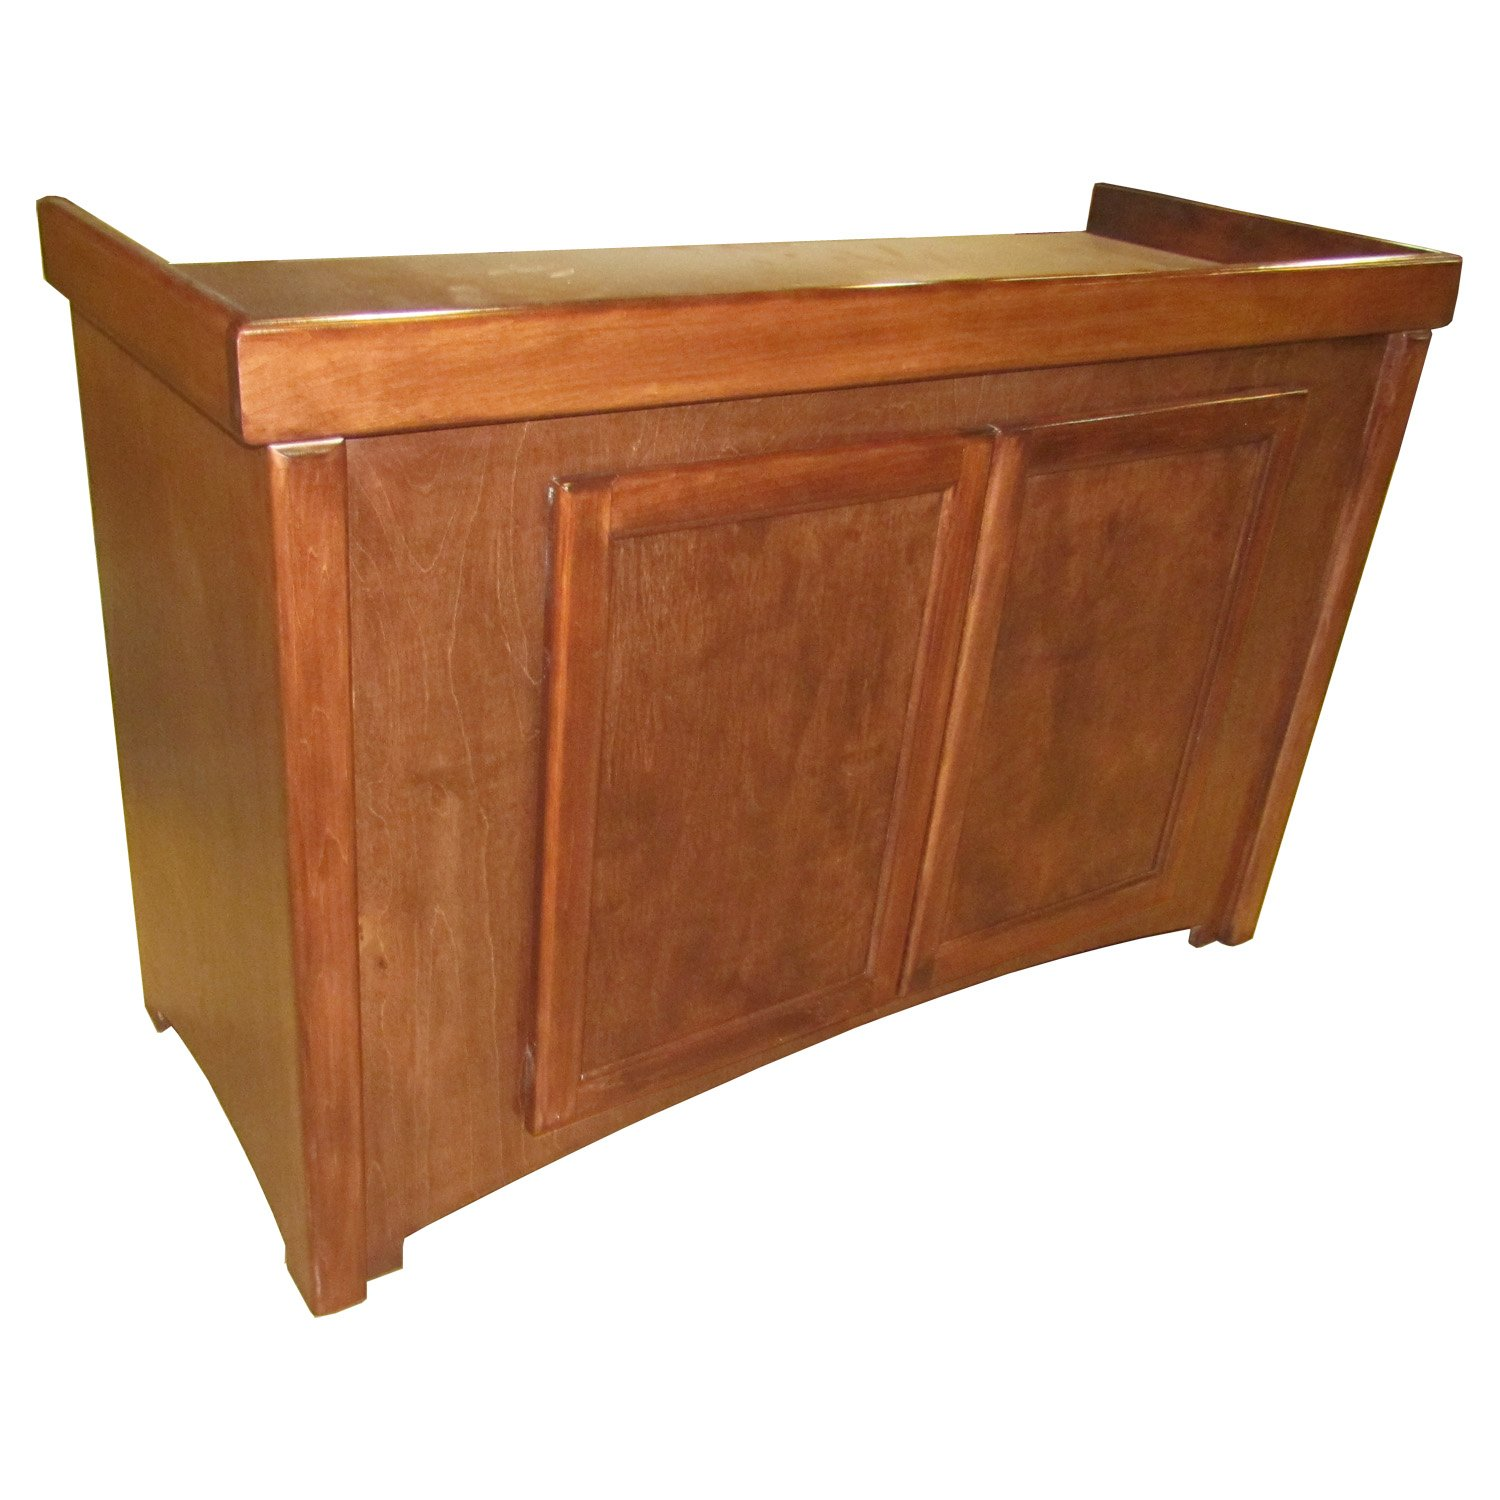 R&J Enterprises 48X18 Cherry Birch Calypso Series 75/90/110 Cabinet